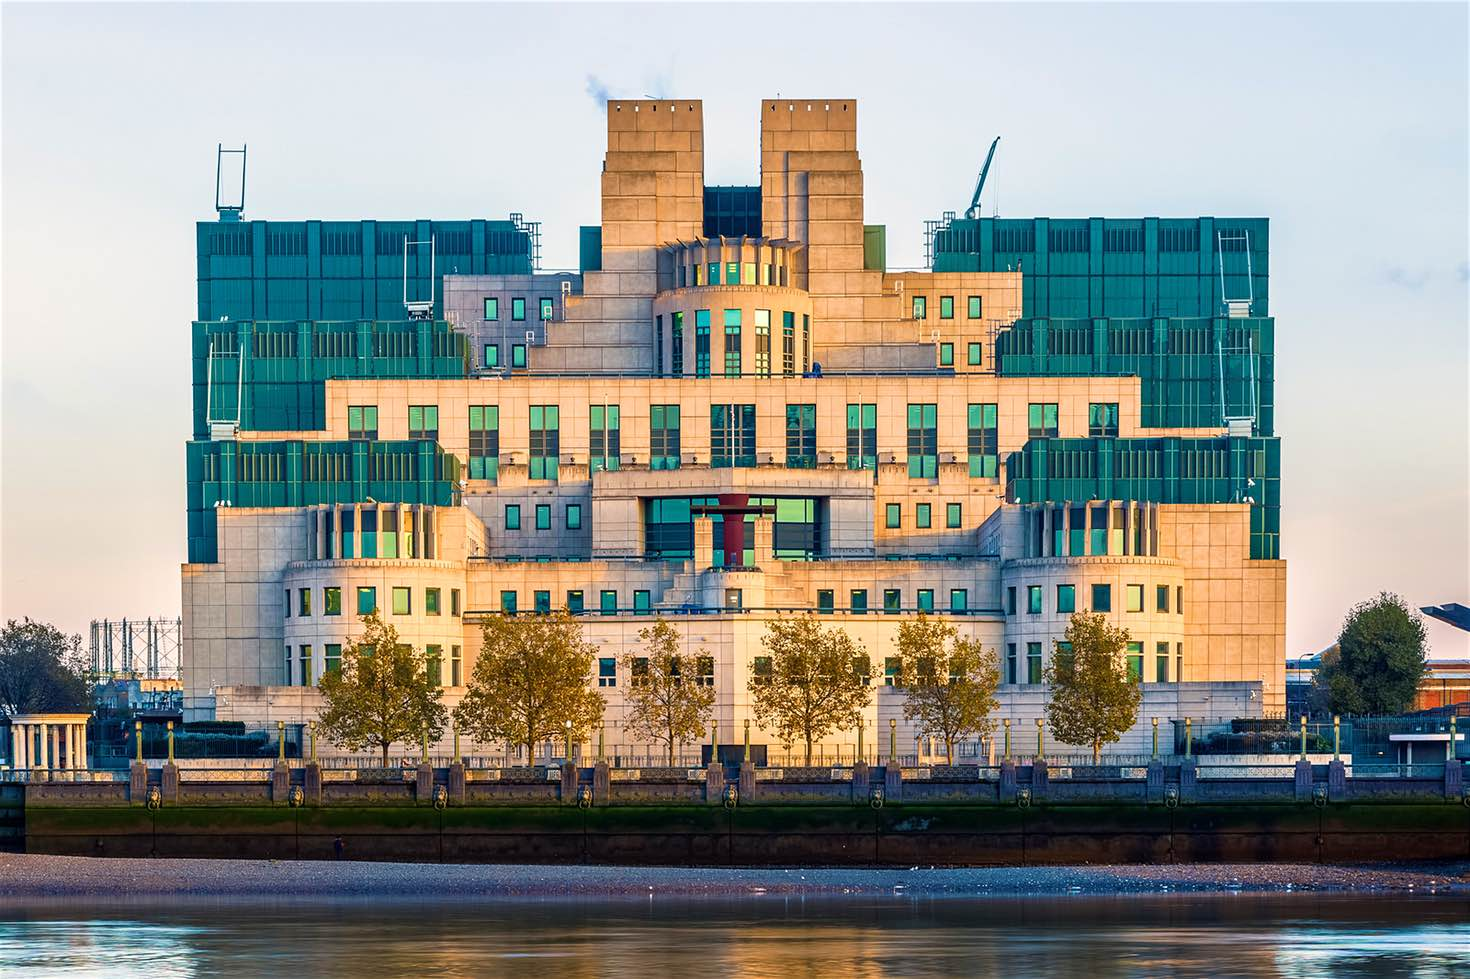 MI6 building, London © VictorHuang / Getty Images